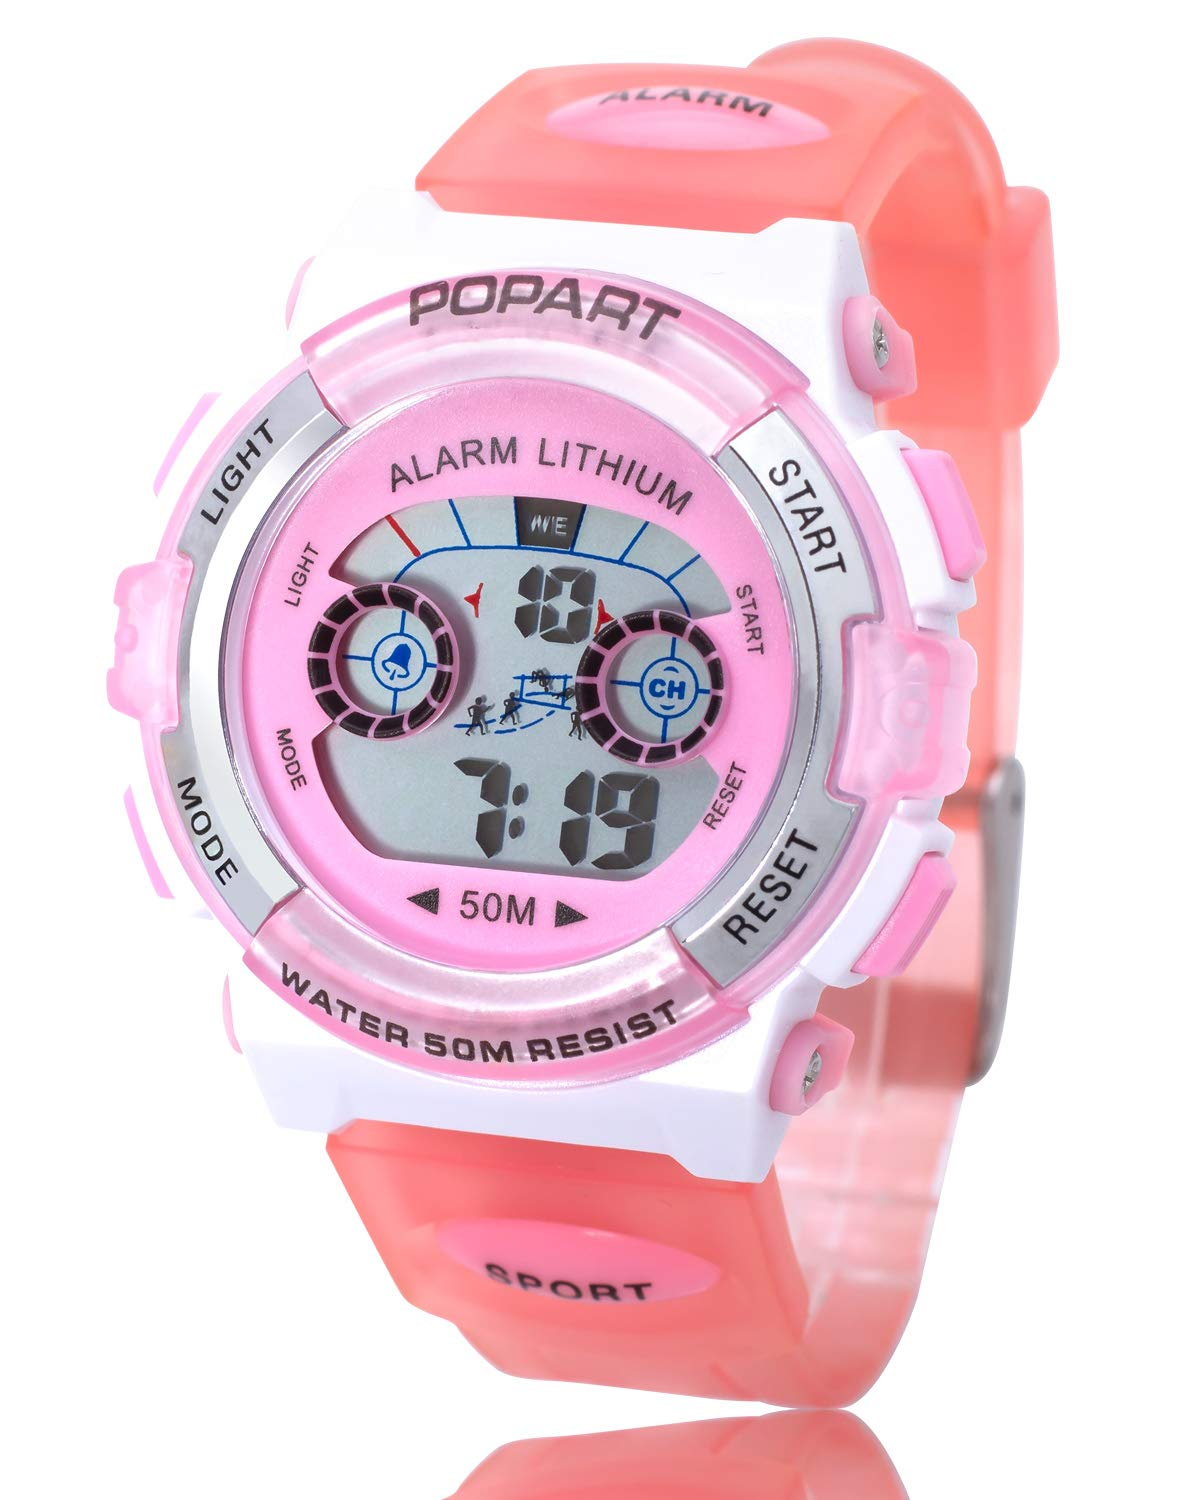 POPART Girl Toys Age 5-12, LED 50M Waterproof Digital Sport Watches for Kids Birthday Presents Gifts for 5-13 Year Old Girls - Pink by POPART